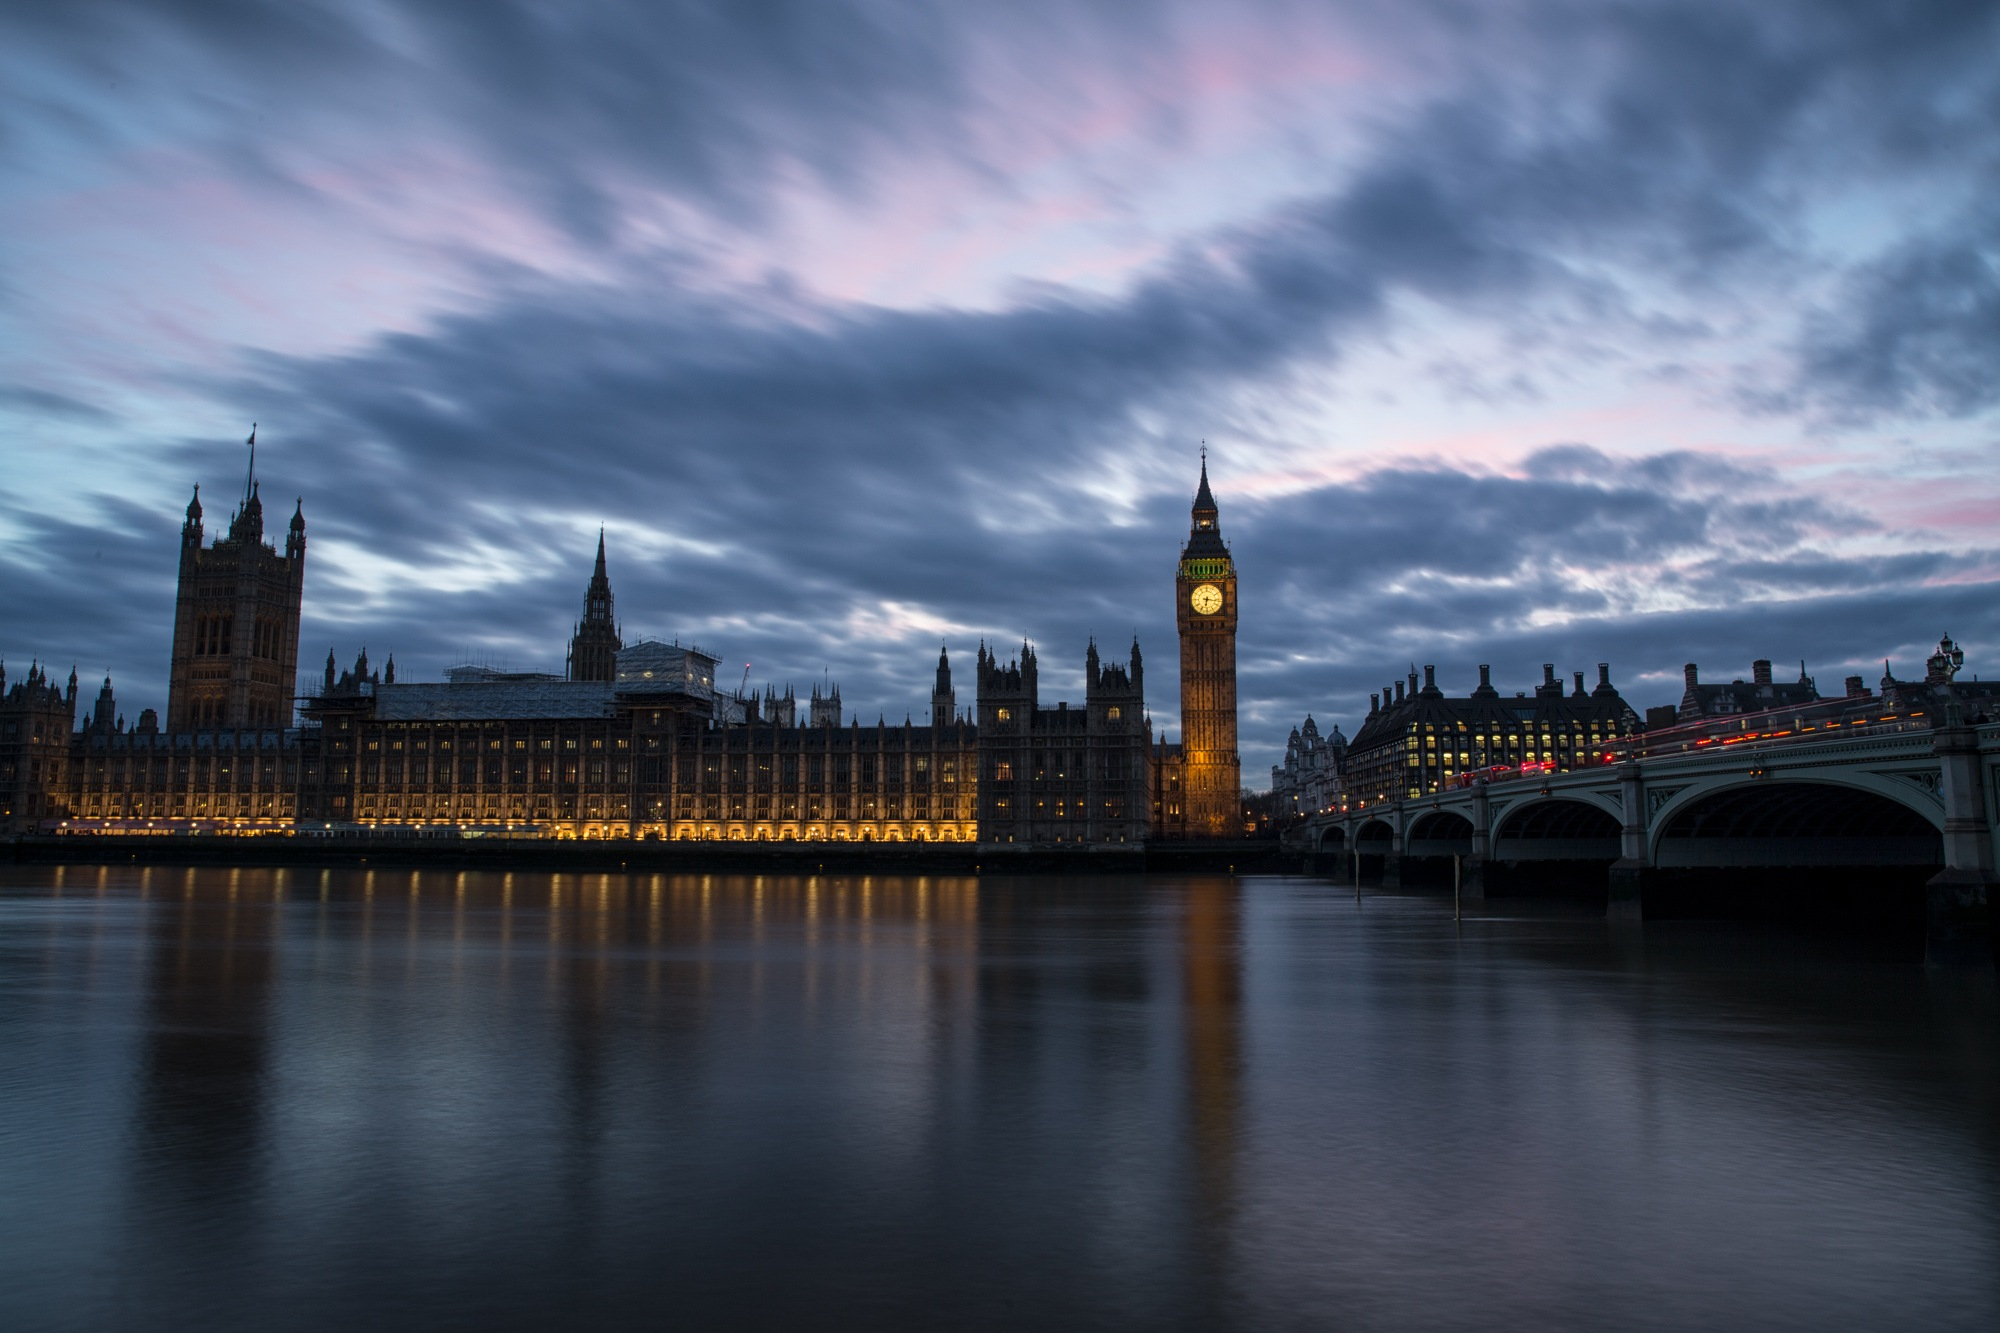 Houses of Parliament under construction by cat66chapman